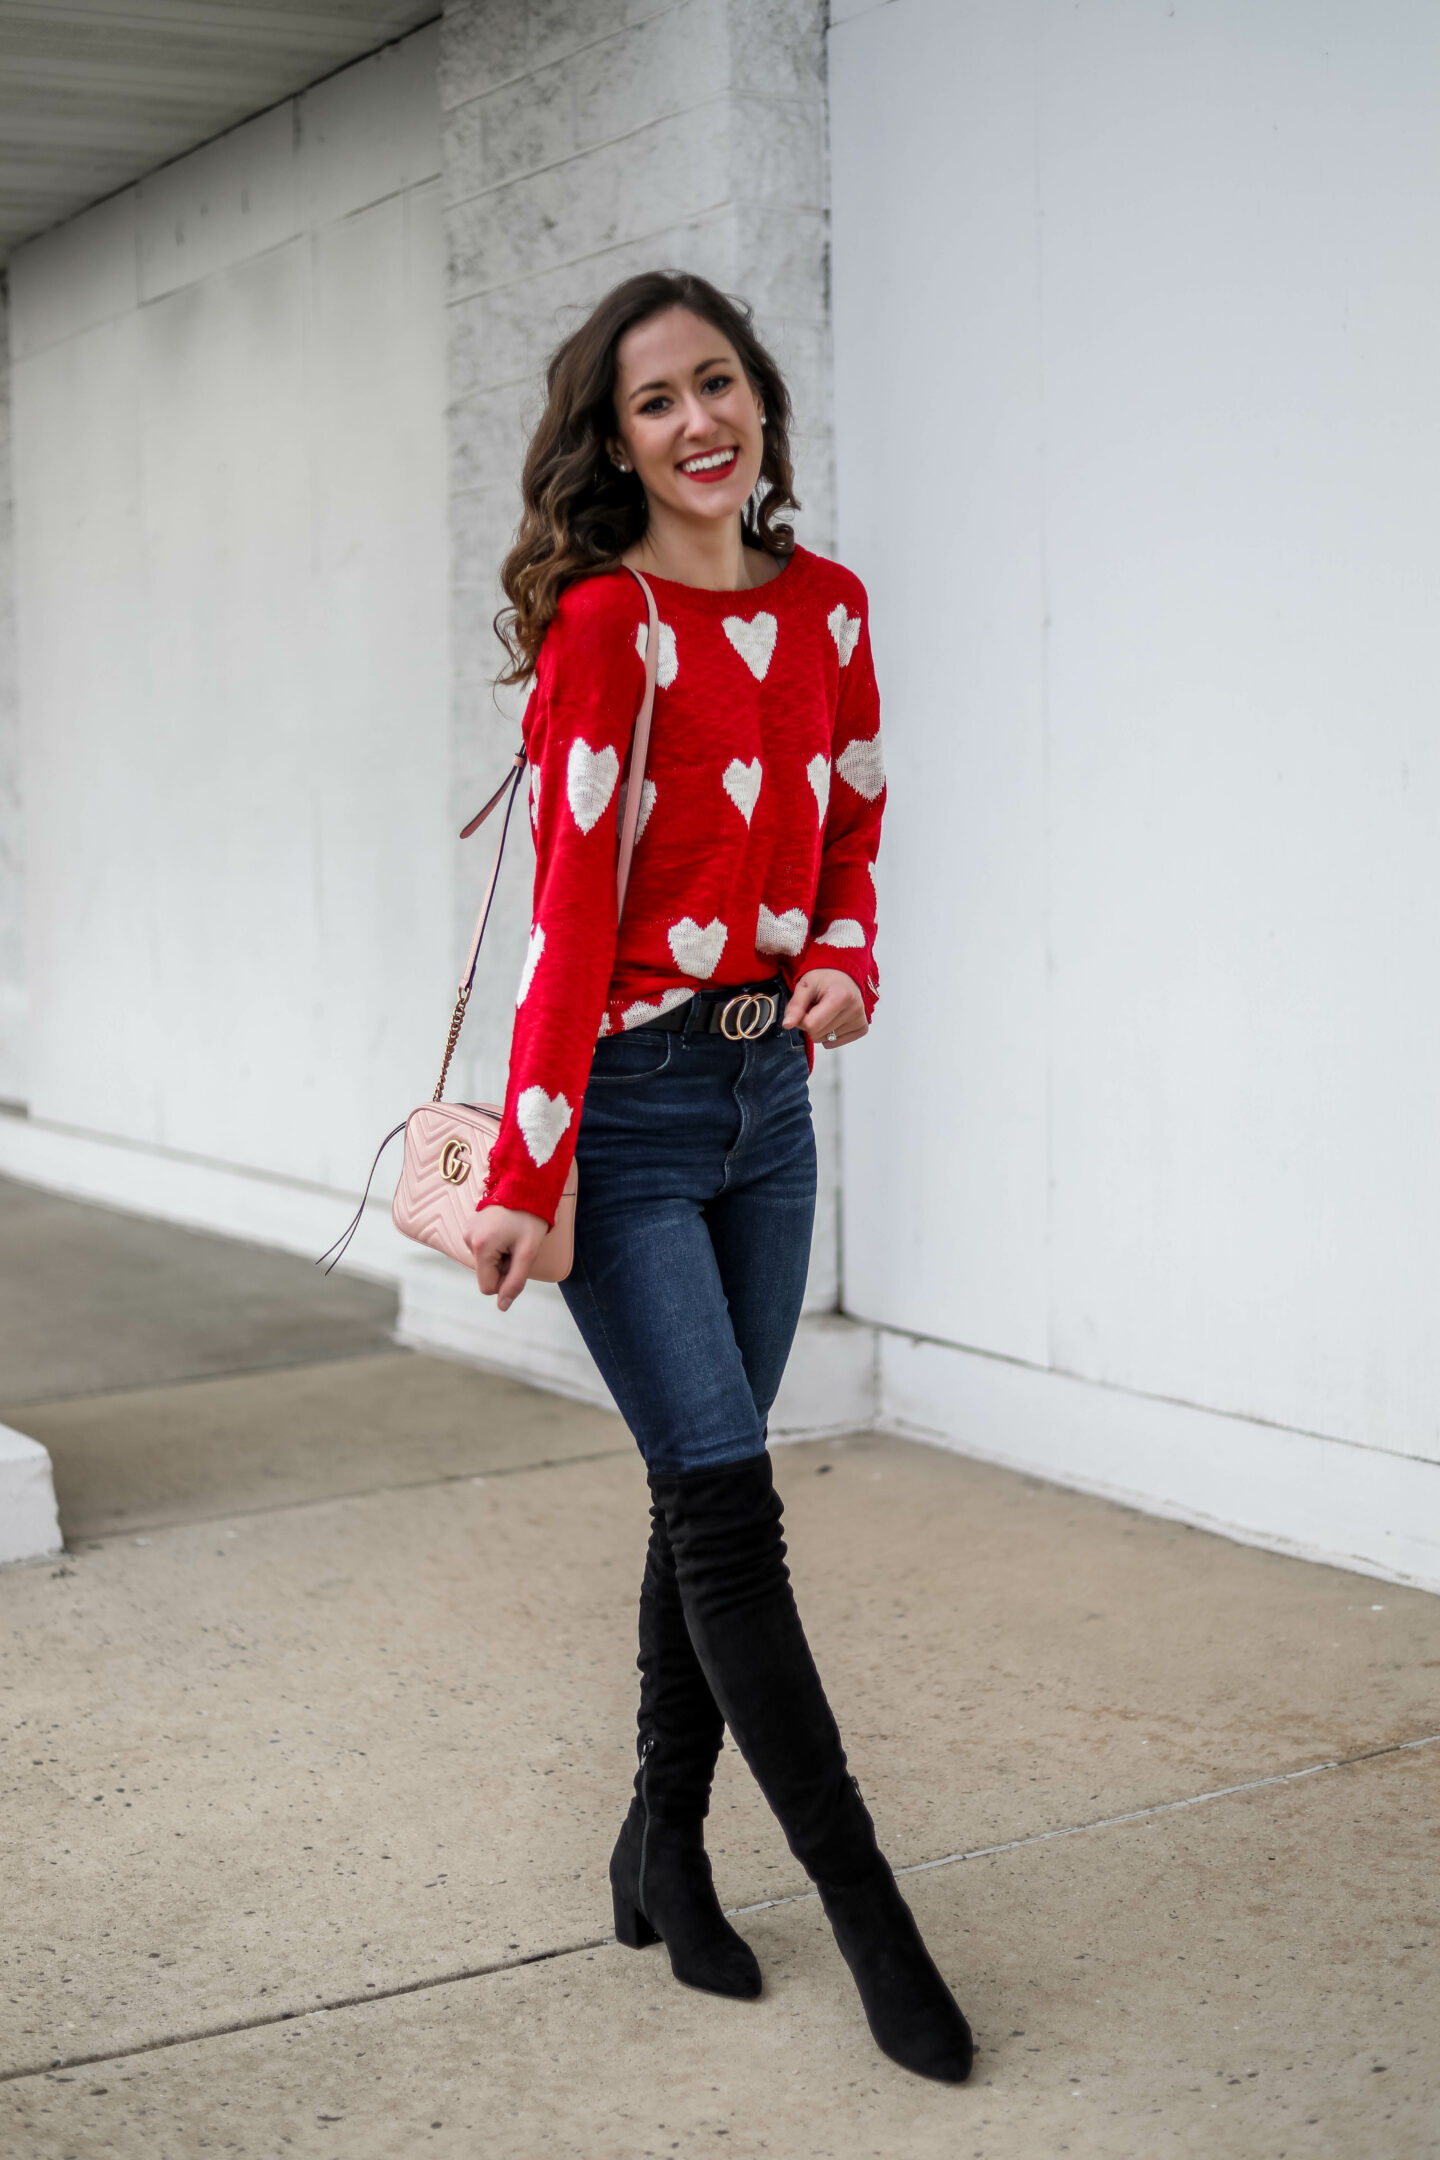 AFFORDABLE VALENTINE'S DAY OUTFIT - Amazon heart sweater on Coming Up Roses